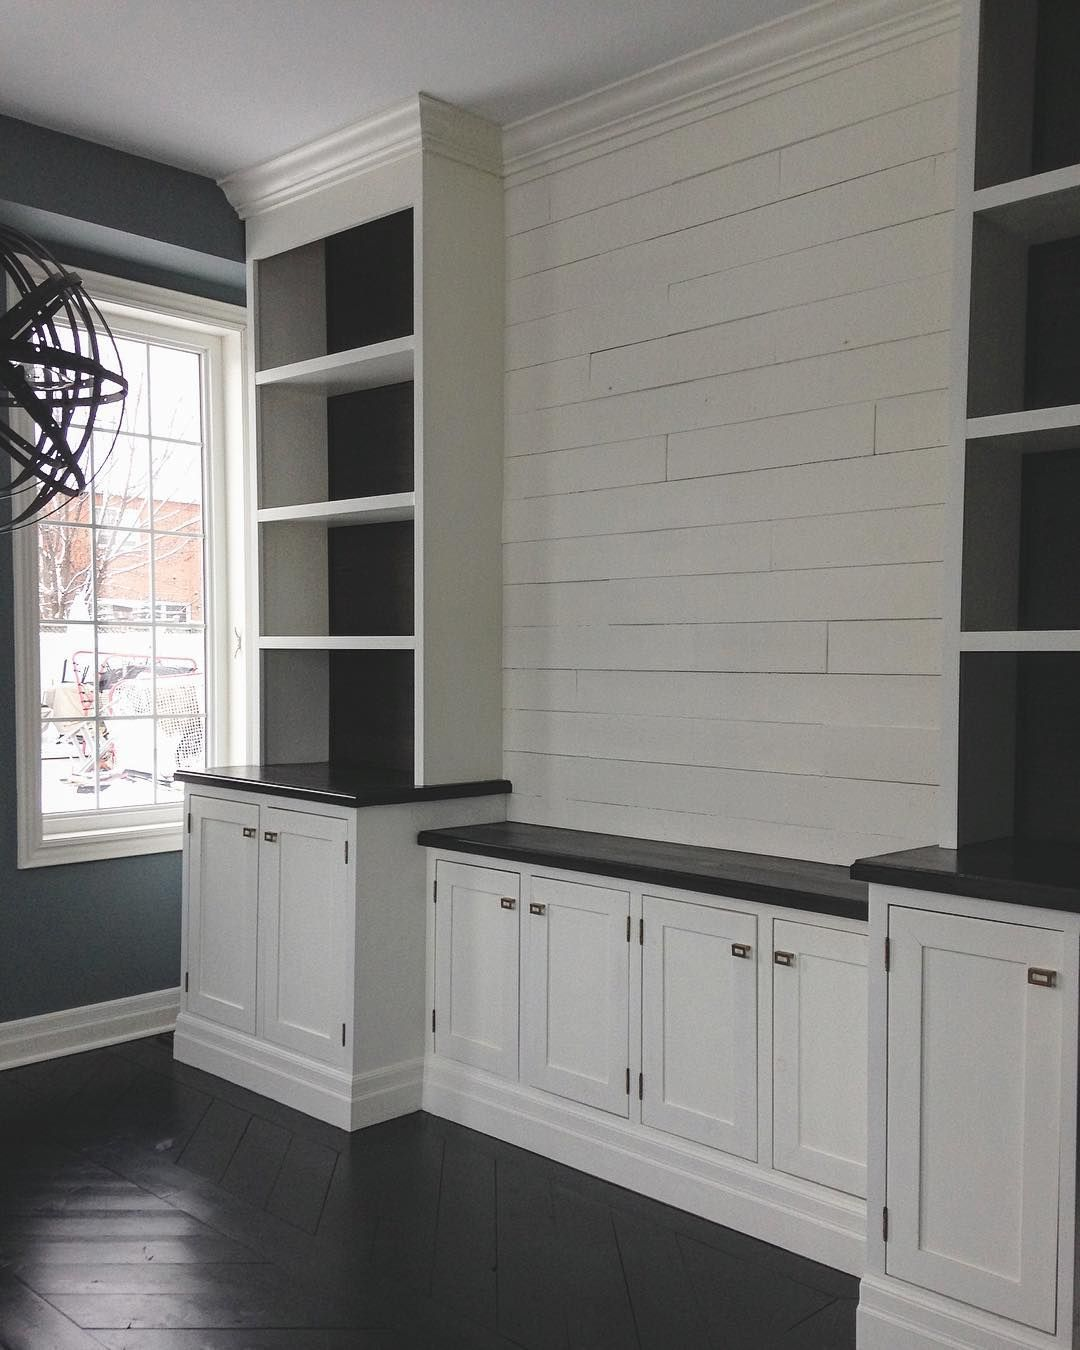 I Really Did Love This Room That Wall Of Uneven Rustic Shiplap I Look Forward To Building Somethin Living Room Built Ins Remodel Bedroom Room Remodeling